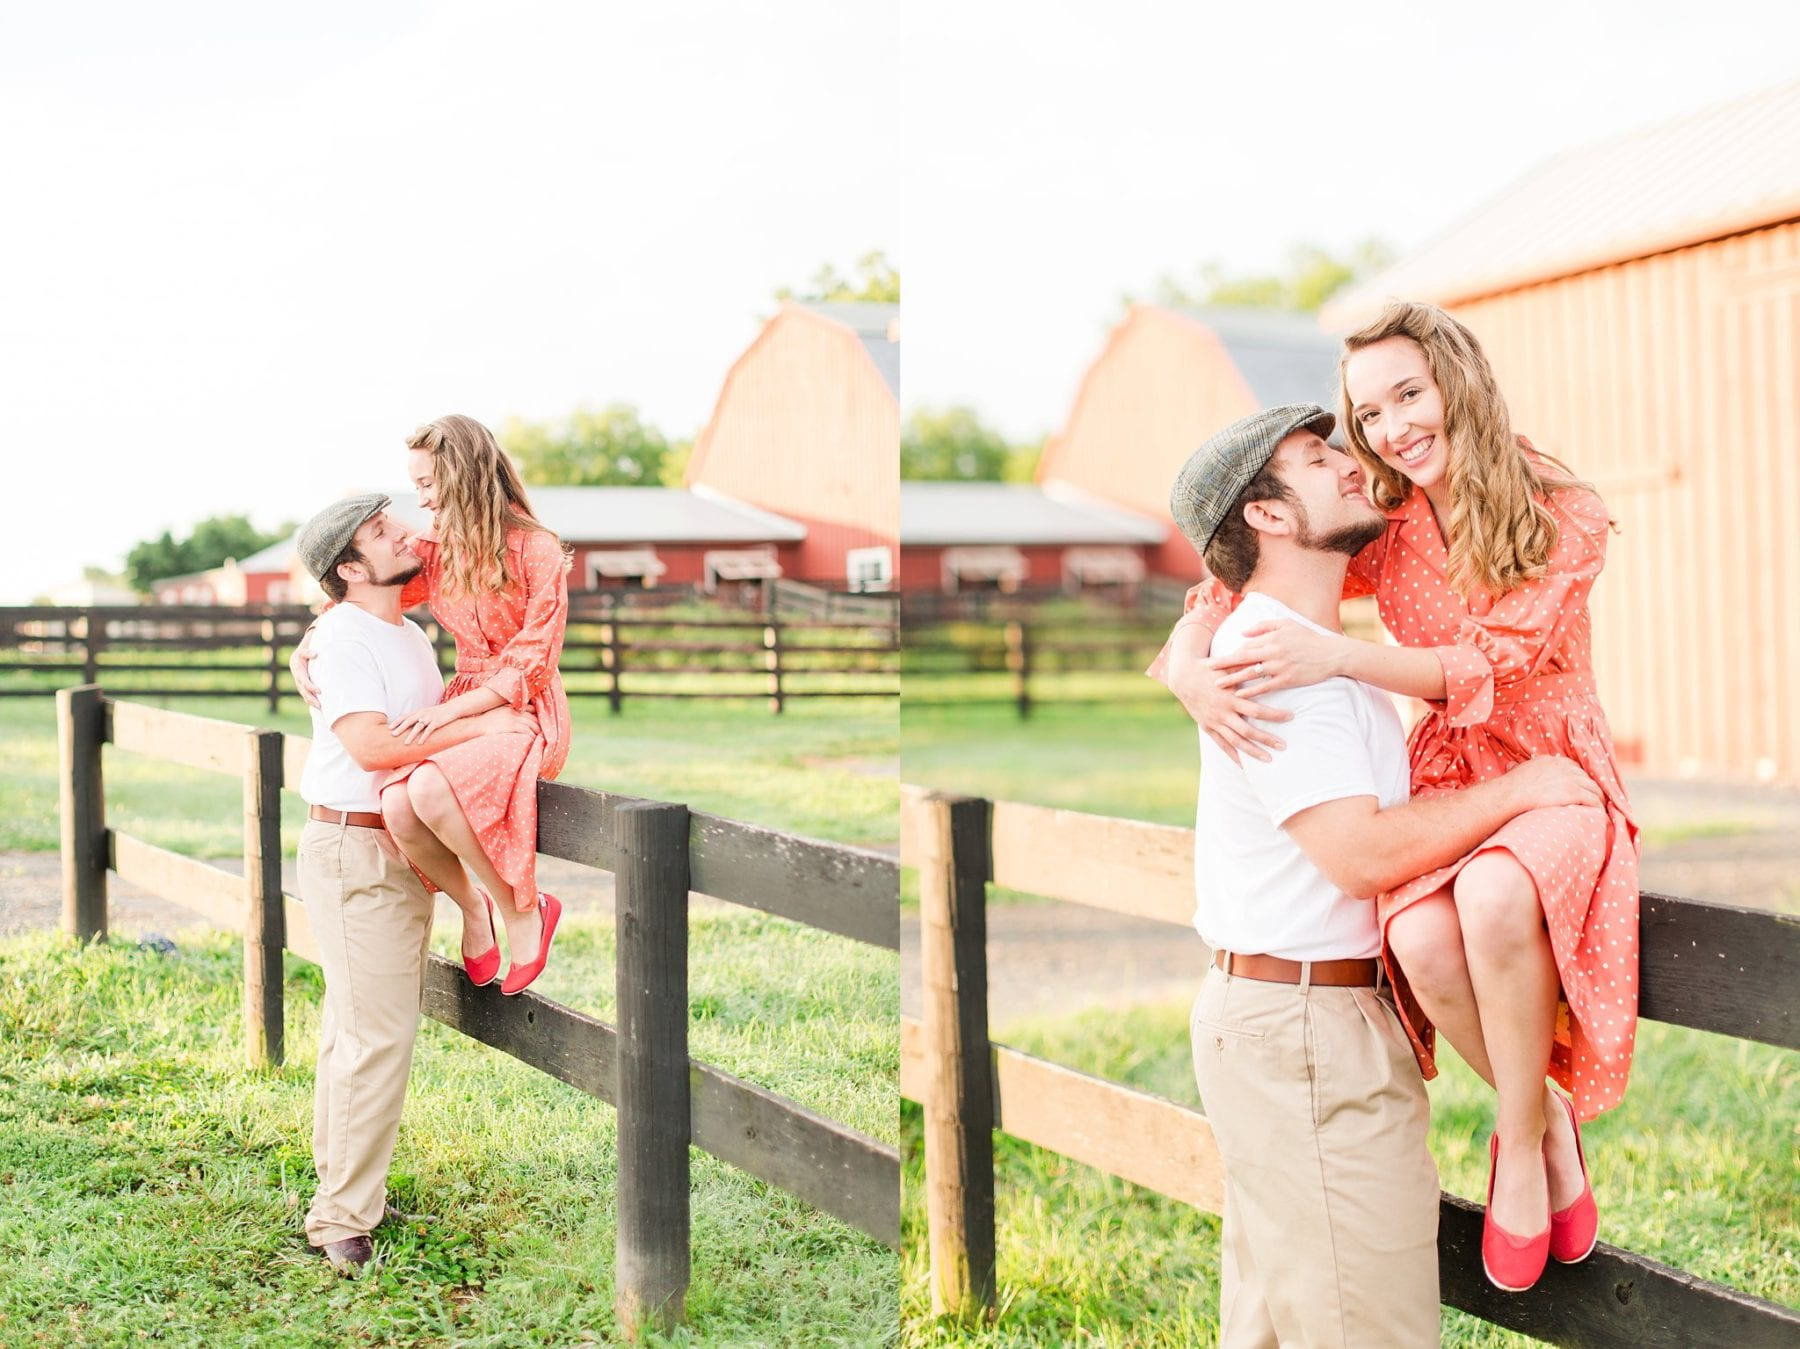 County Fair Engagement Photos Virginia Wedding Photographer Megan Kelsey Photography Samantha & Charles-76.JPG